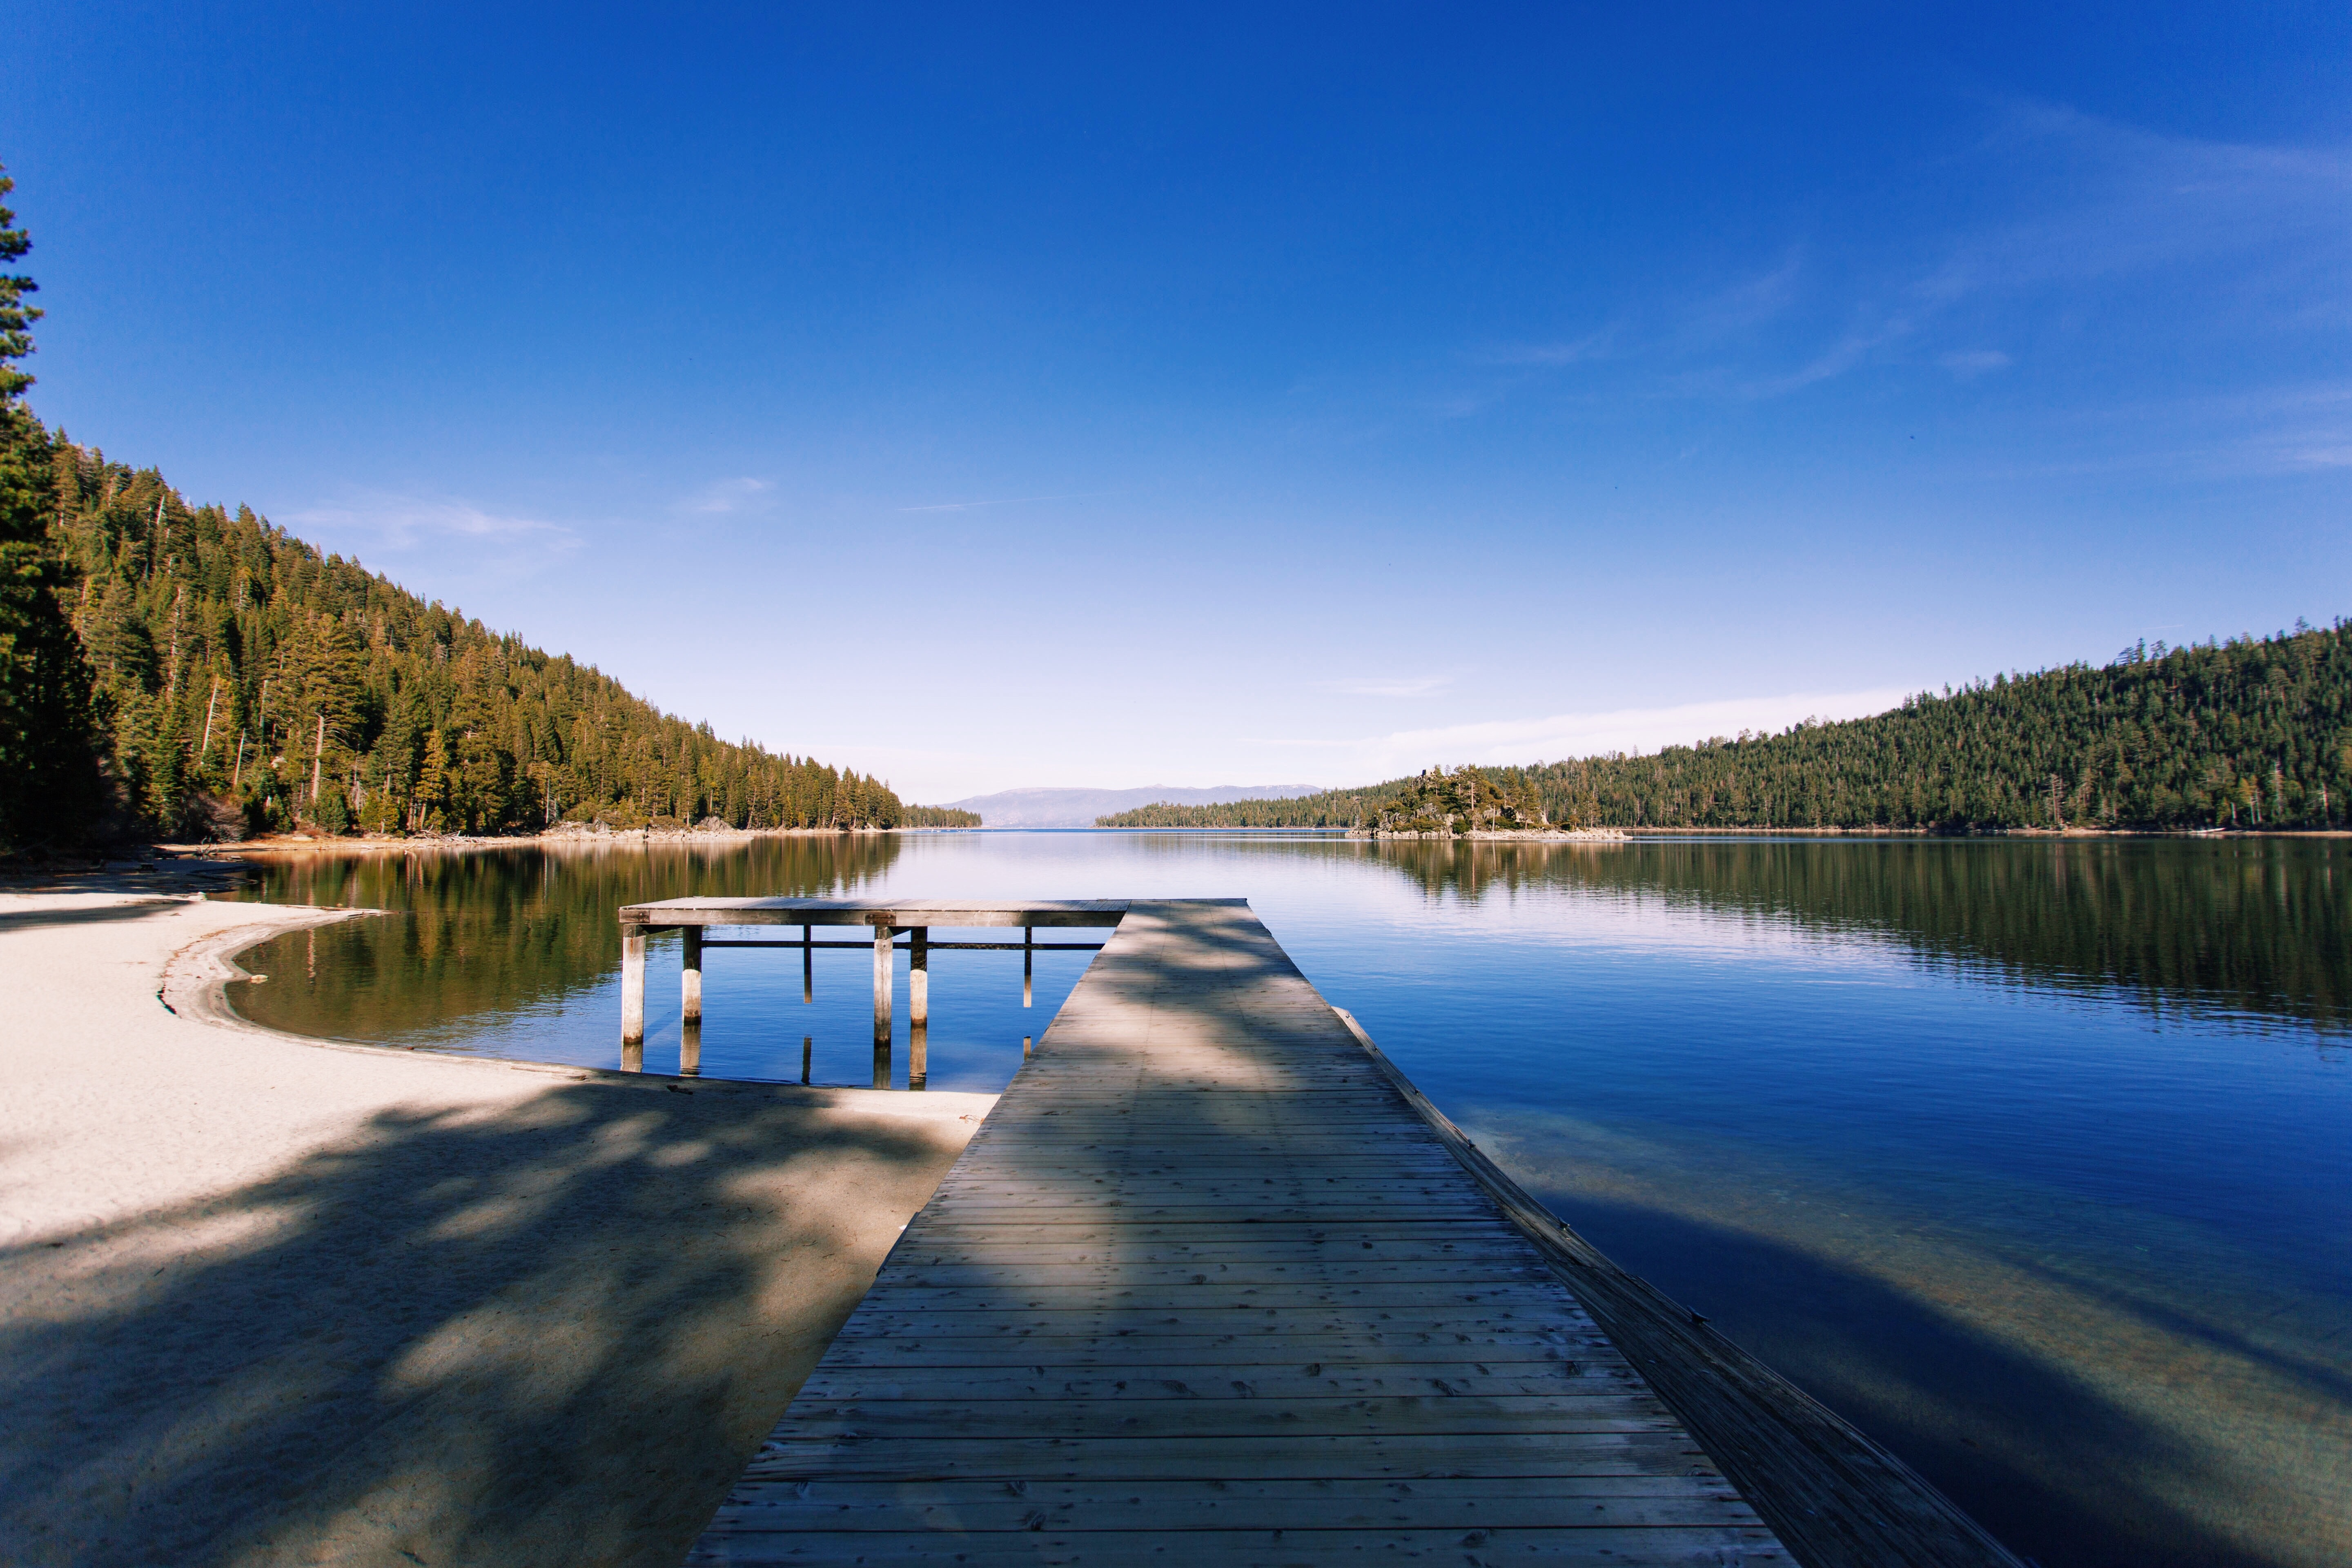 gray dock on body of water near green leafed trees